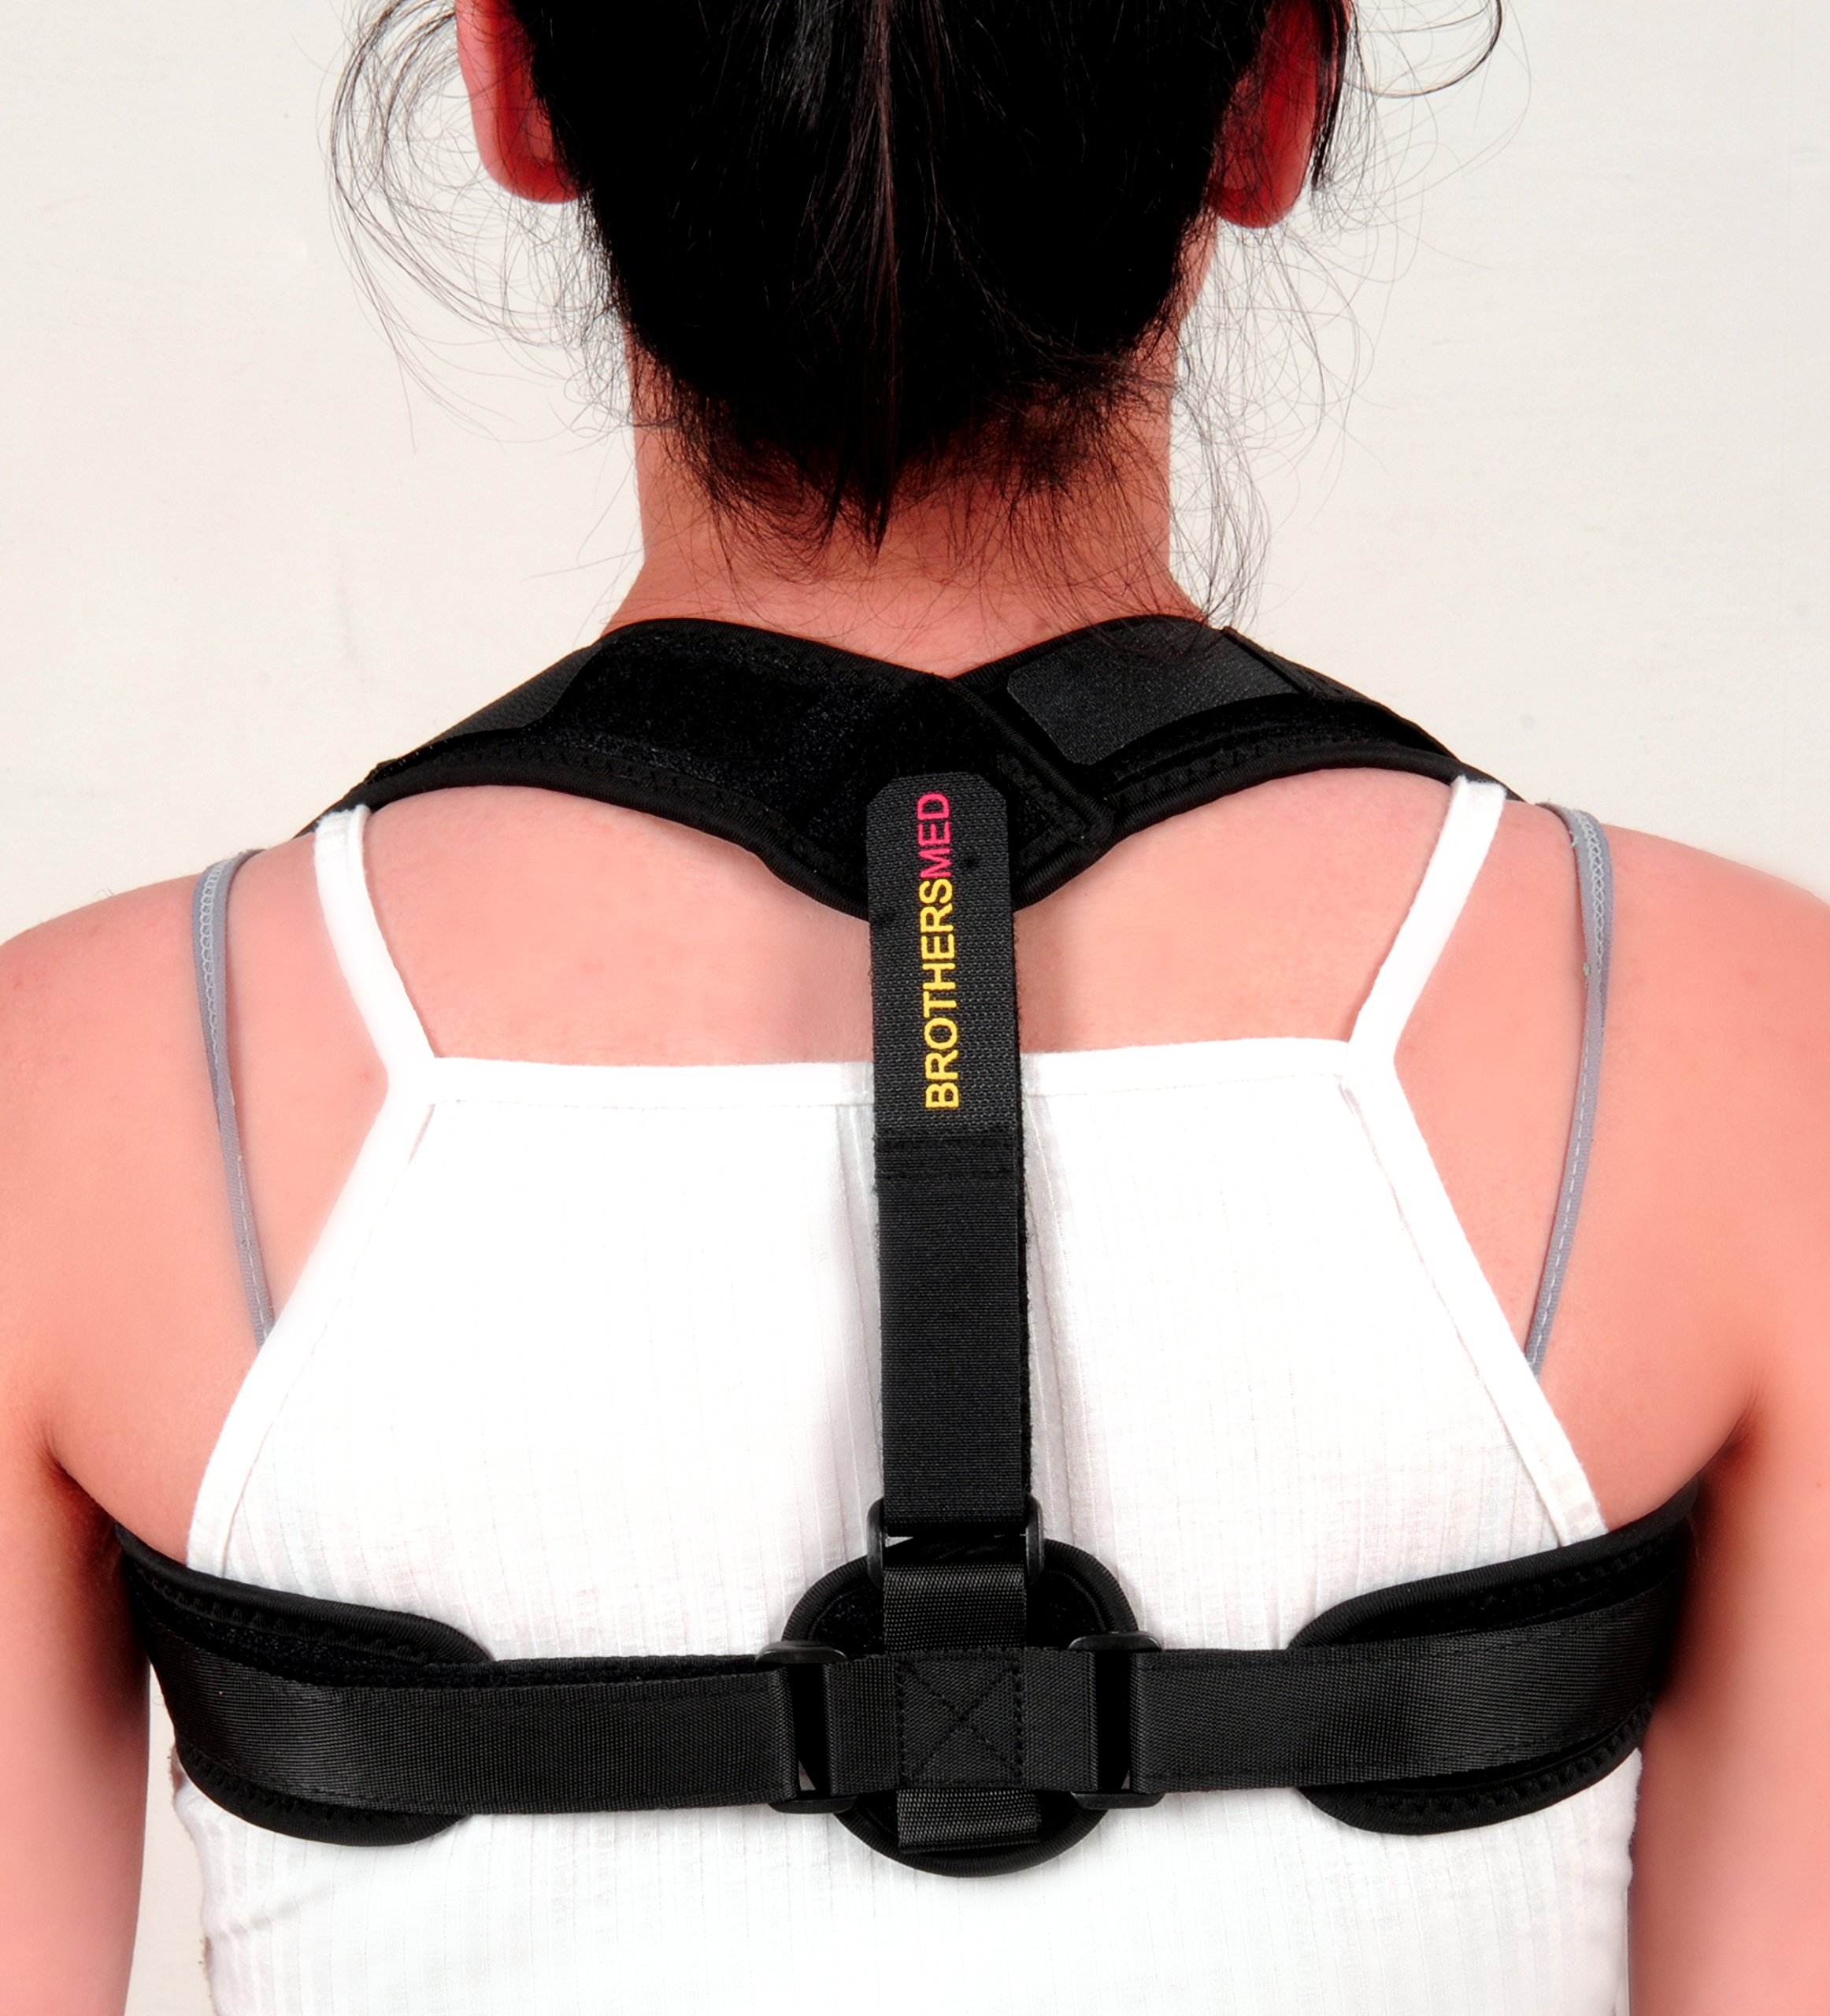 Posture Corrector for Women & Men, Orthopedic Back Support,Fully Adjustable, Breathable and Comfortable Support Brace,Upper Back & Neck Pain Relief